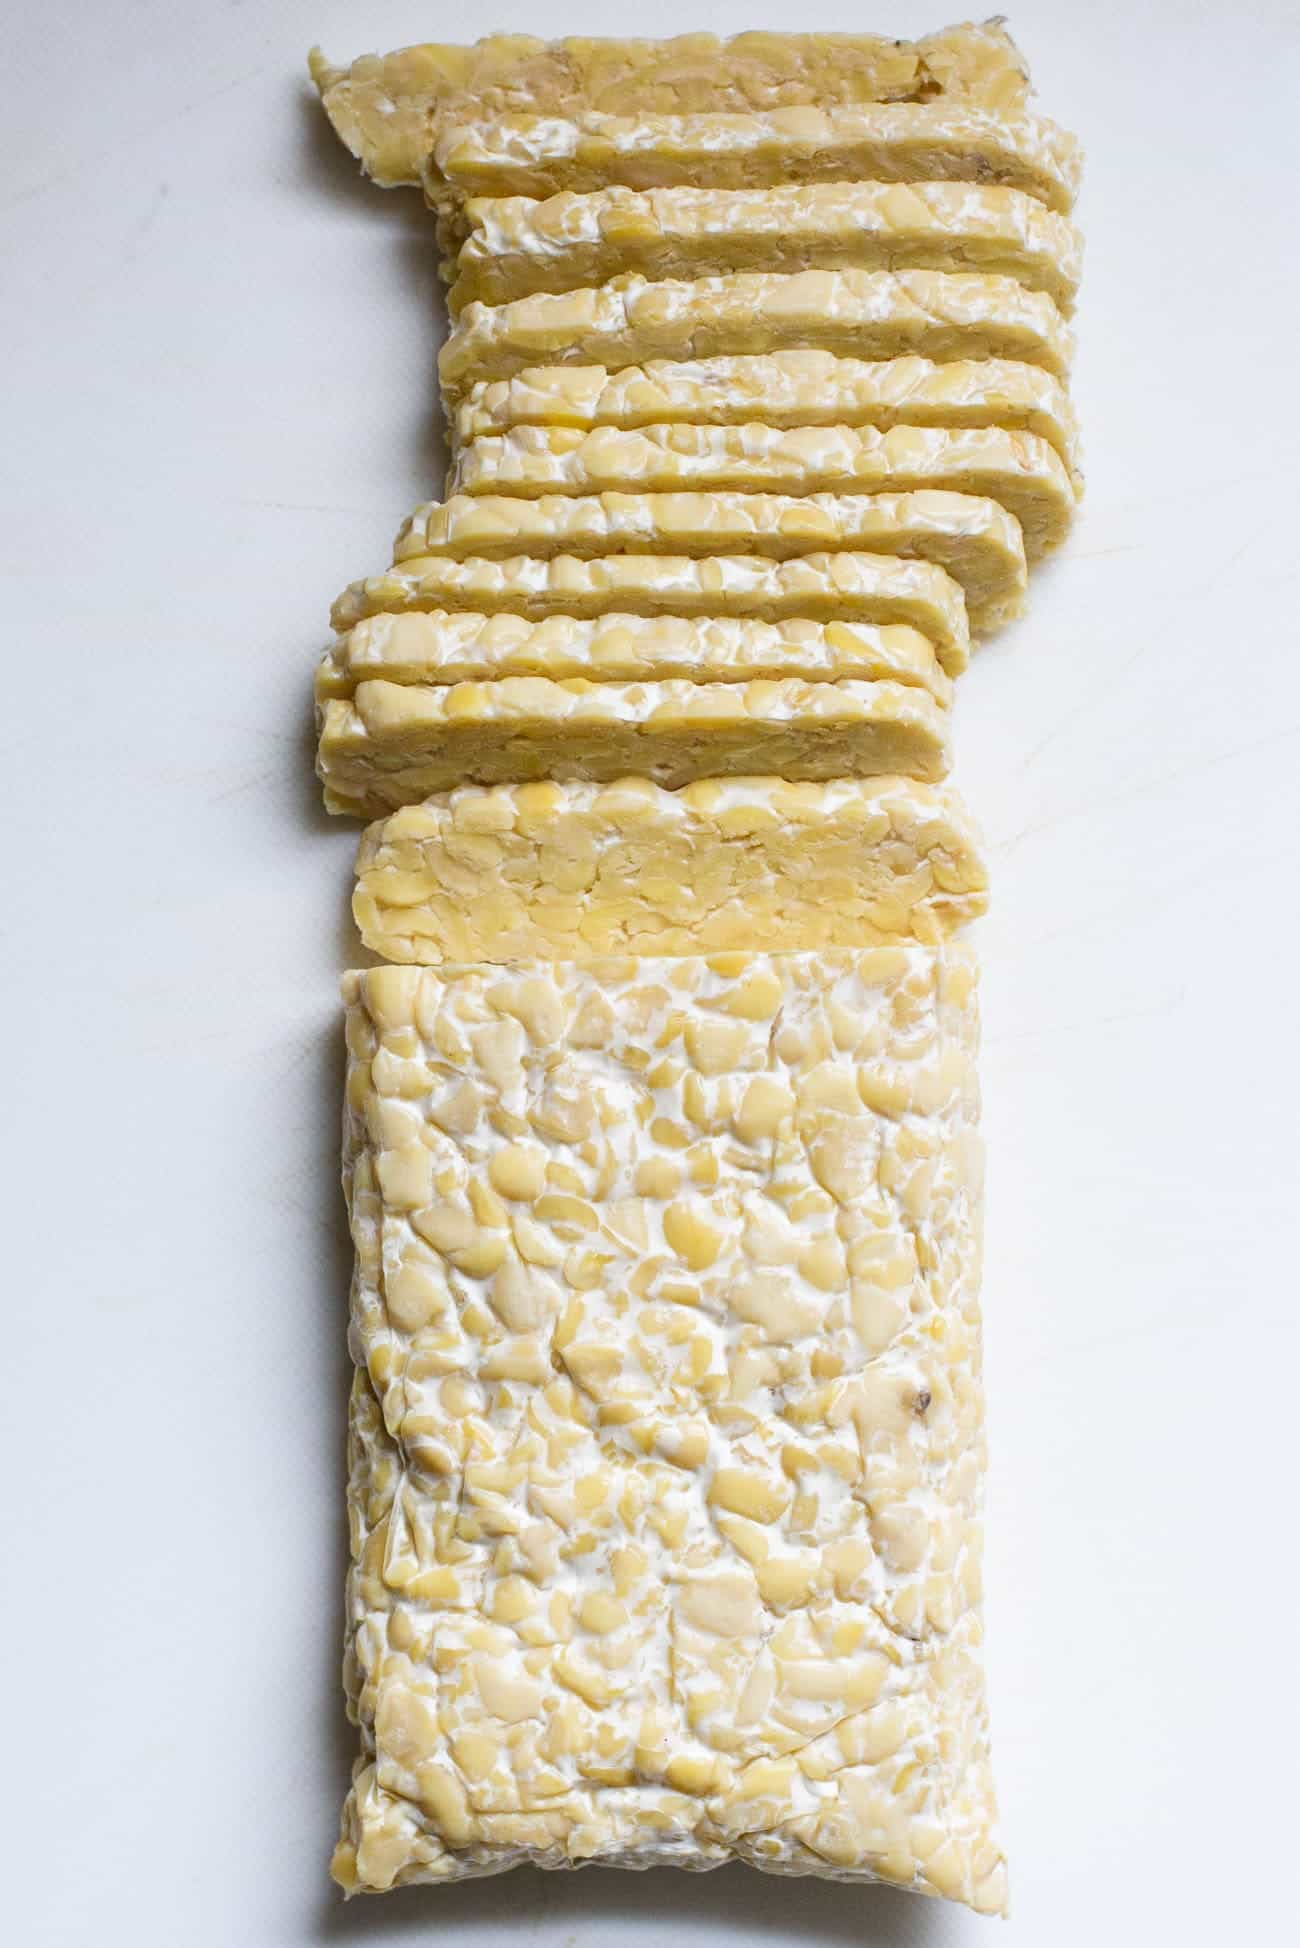 A block of tempeh cut into slices